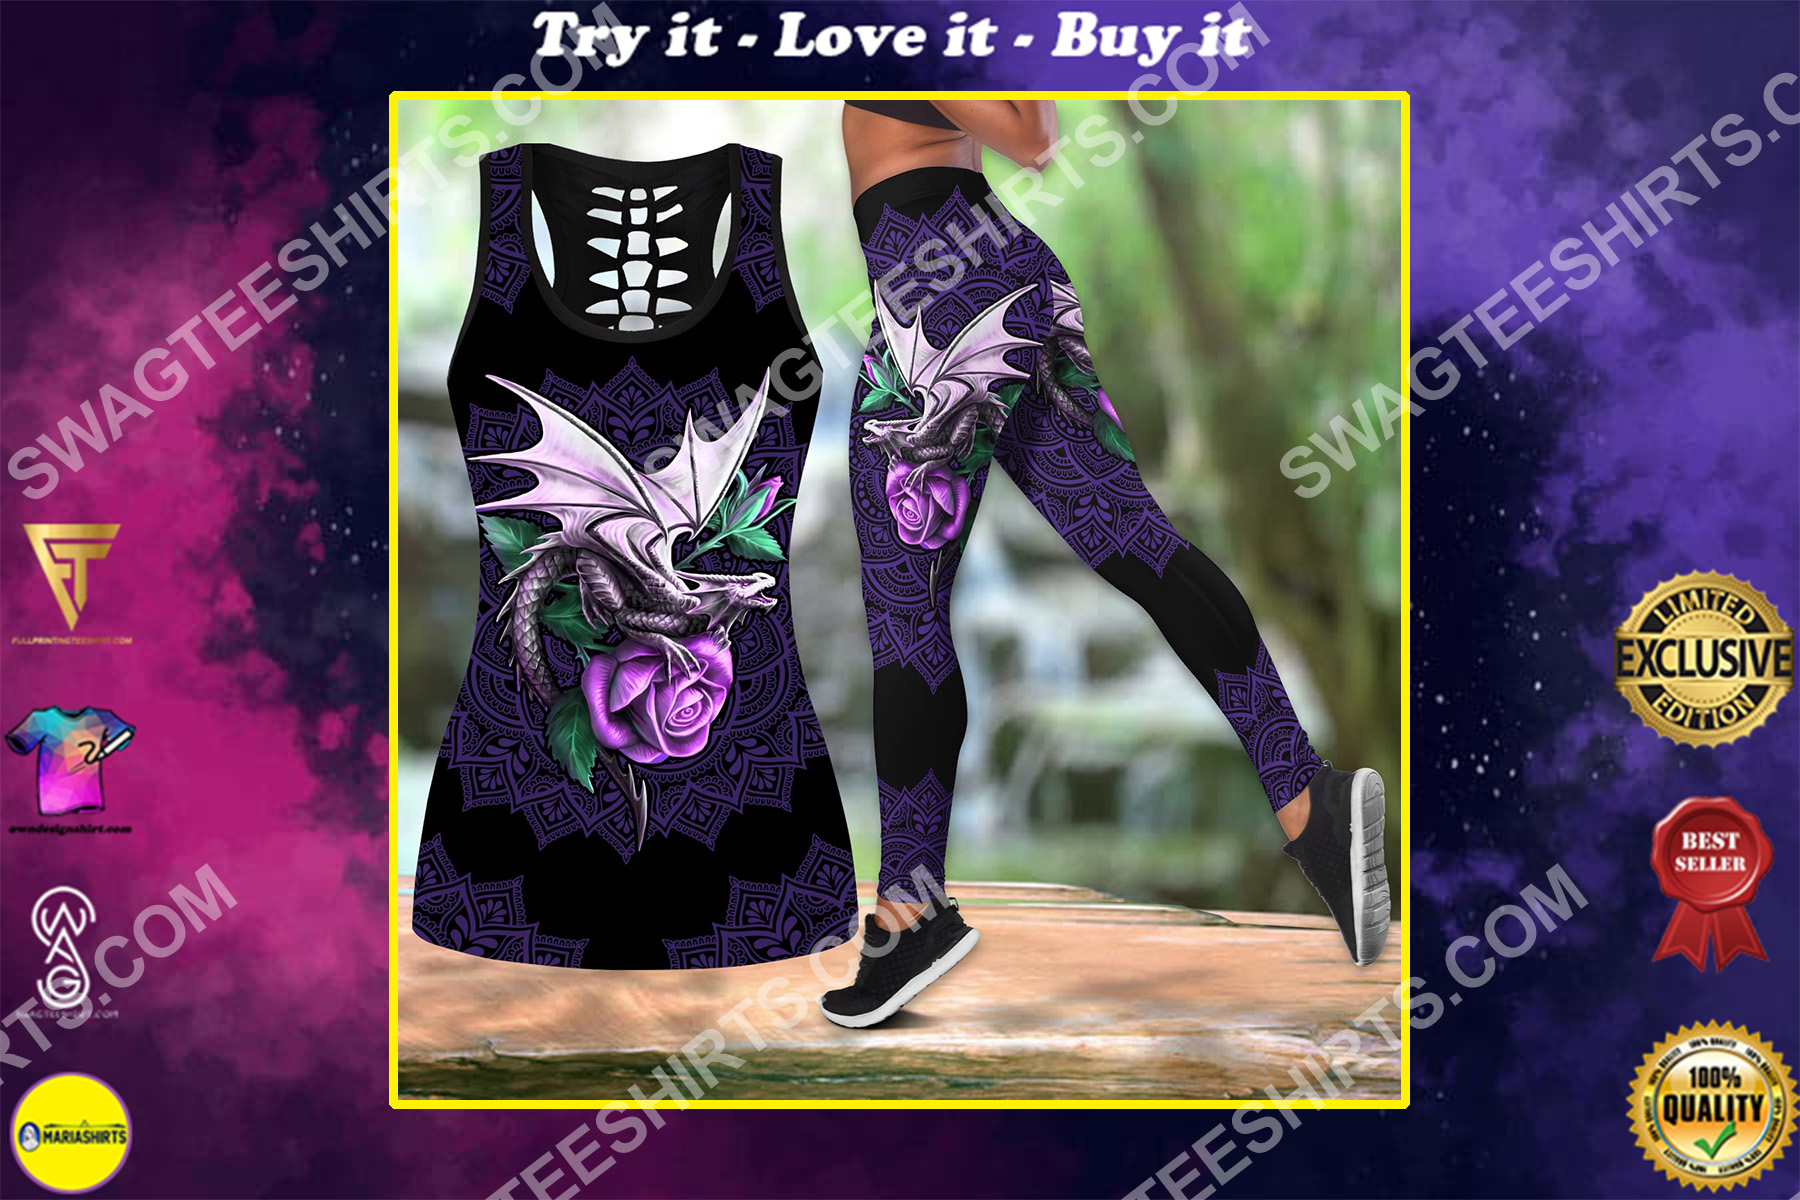 the dragon and rose all over printed set sports outfit